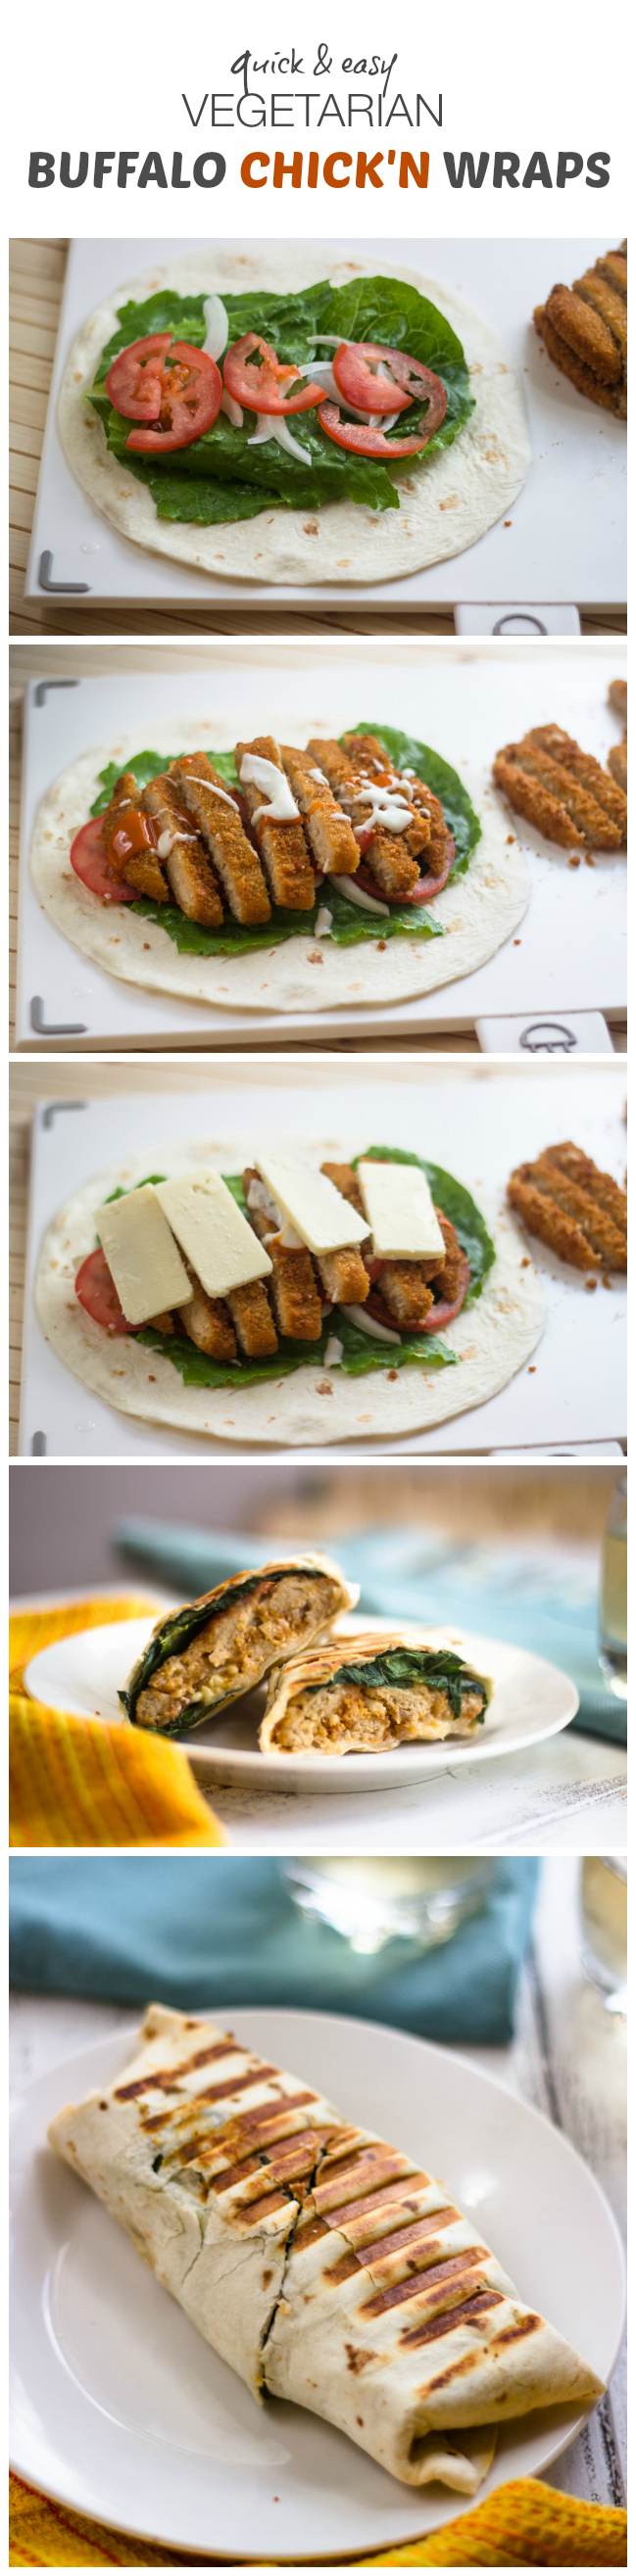 Quick & Easy Vegetarian Buffalo Chicken Wraps #healthy #veggies